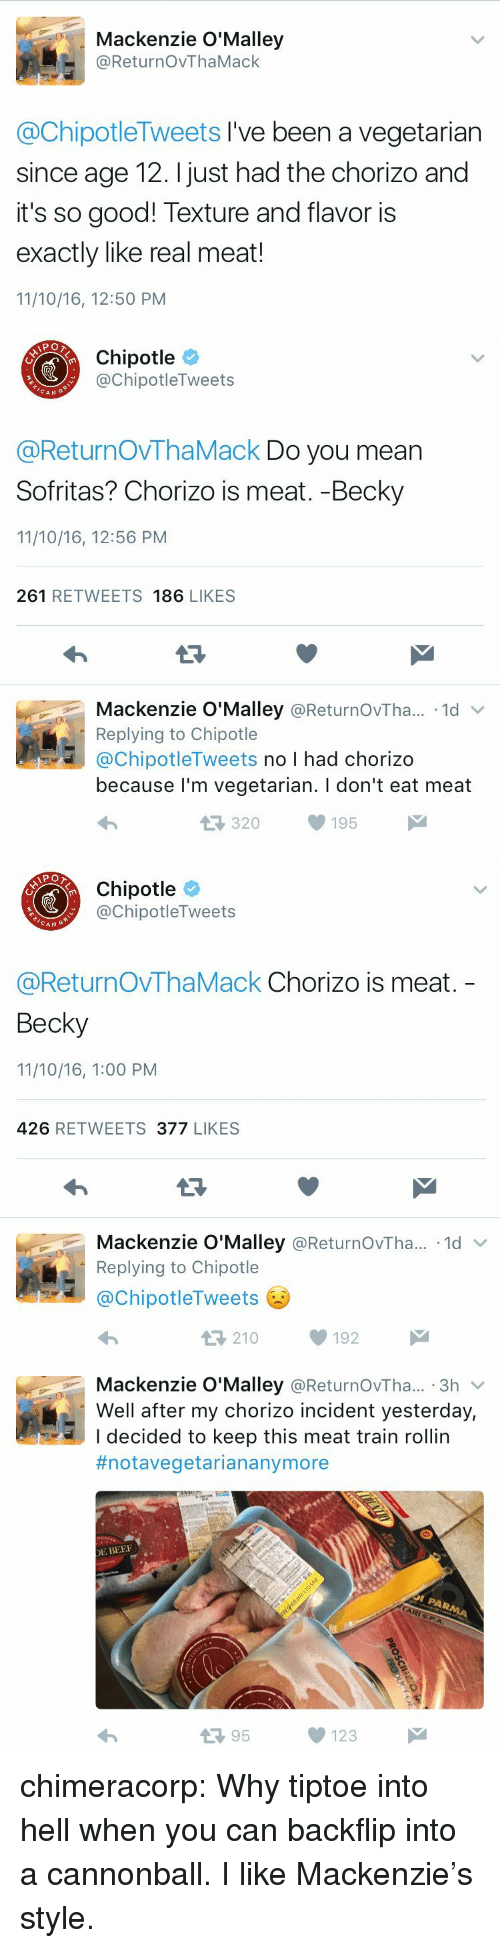 Broomstick, Chipotle, and Tumblr: Mackenzie O'Malley  @ReturnOvThaMack  @ChipotleTweets I've been a vegetarian  since age 12. I just had the chorizo and  it's so good! Texture and flavor is  exactly like real meat!  11/10/16, 12:50 PM   Chipotle  @ChipotleTweets  CAN  @ReturnOVThaMack Do you mean  Sofritas? Chorizo is meat. -Becky  11/10/16, 12:56 PM  261 RETWEETS 186 LIKES  Mackenzie O'Malley @ReturnOvTha.. 1d  Replying to Chipotle  @ChipotleTweets no I had chorizo  because l'm vegetarian. I don't eat meat  320195   Chipotle  @ChipotleTweets  CAN G  @ReturnOvThaMack Chorizo is meat.  Becky  11/10/16, 1:00 PM  426 RETWEETS 377 LIKES  Mackenzie O'Malley @ReturnOvTha...-1d ﹀  Replying to Chipotle  @ChipotleTweets  わ  210192   Mackenzie O'Malley @ReturnOvTha... 3h v  Well after my chorizo incident yesterday,  I decided to keep this meat train rollin  #notavegetariananymore  E BEE  13 95  123 chimeracorp:  Why tiptoe into hell when you can backflip into a cannonball. I like Mackenzie's style.